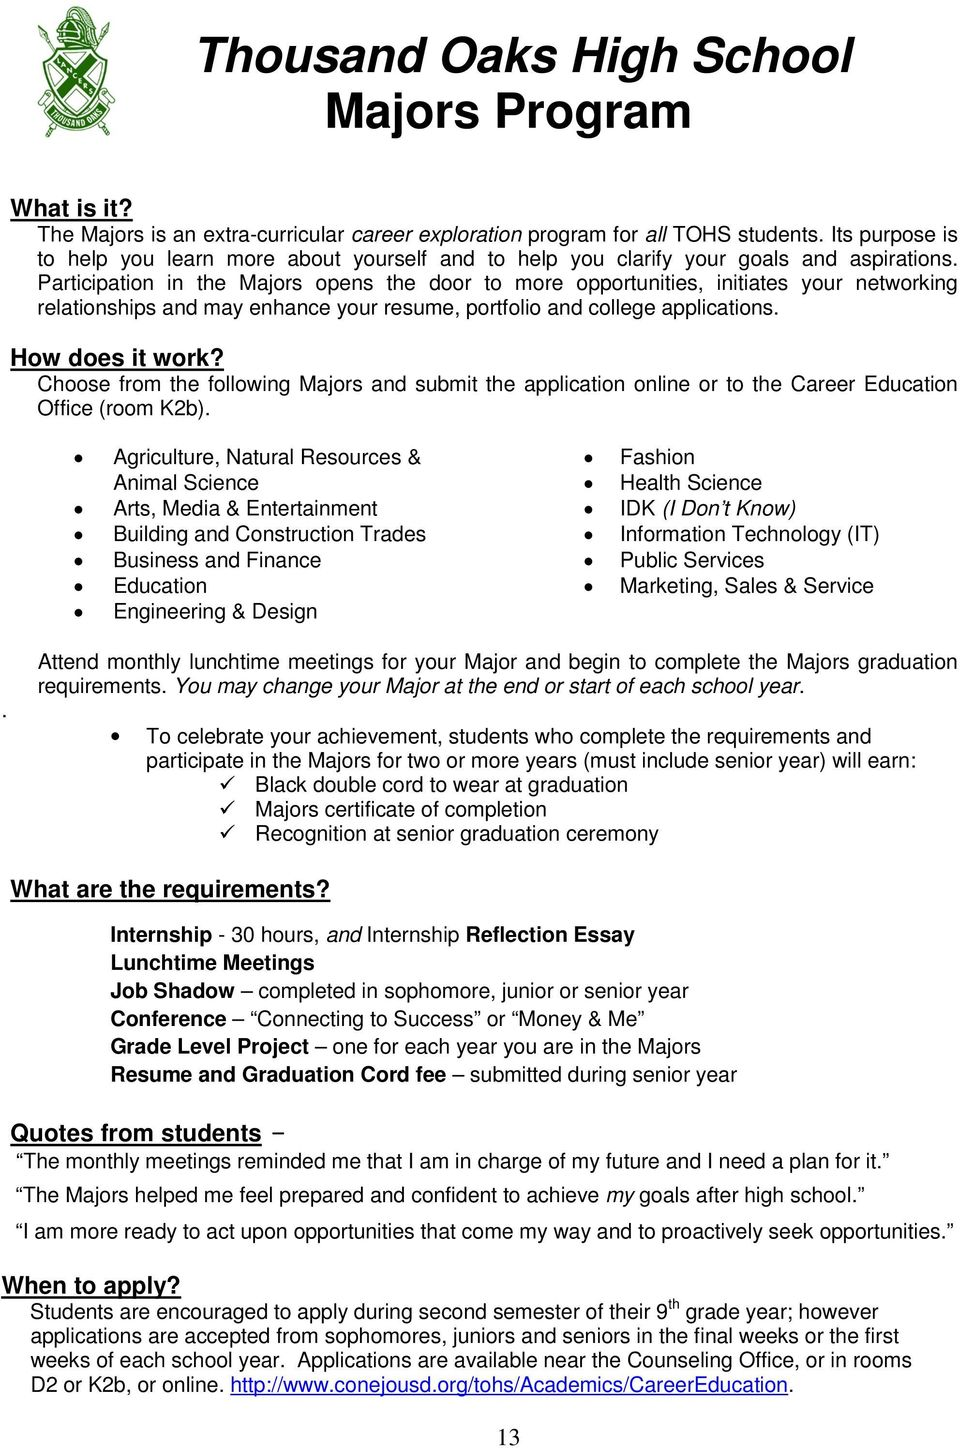 College Entry Essay Examples Children With Cerebral Palsy Participate A Review Of The Pie Chart Showing  Teen And Young Adult Definition Essay Friendship also Essay Diagram Best Online Essay Writer Research Help Study Says Homework Doesnt  Essay On Self Confidence